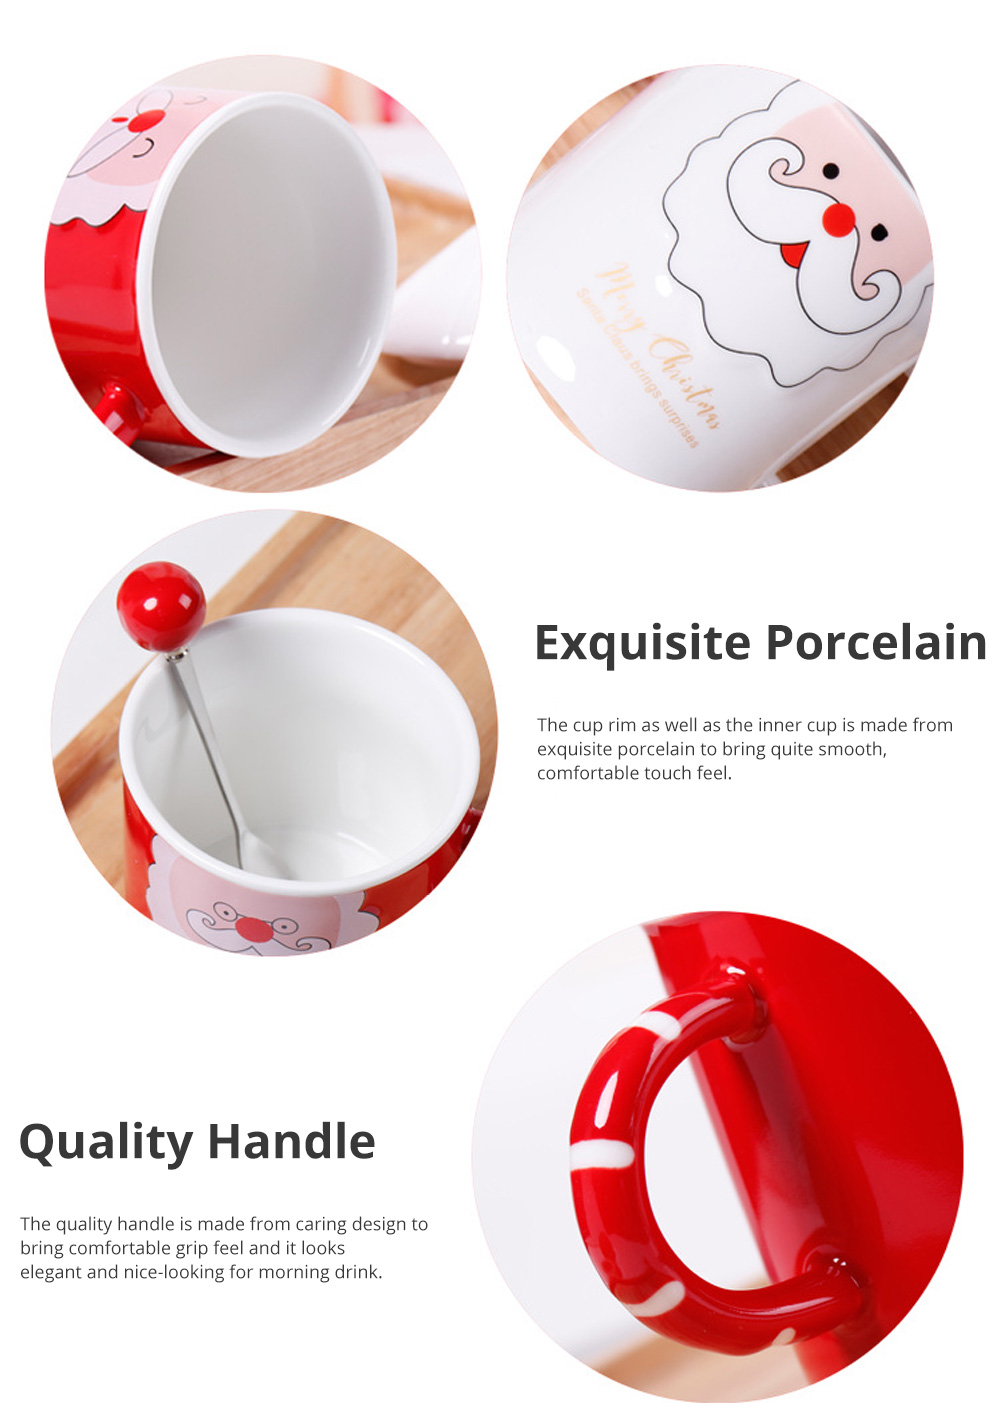 Santa Claus Ceramic Cup for Gifts Family Use Creative Mug with Spoon Easy to Clean and Safe Water Cup Christmas Gift 1